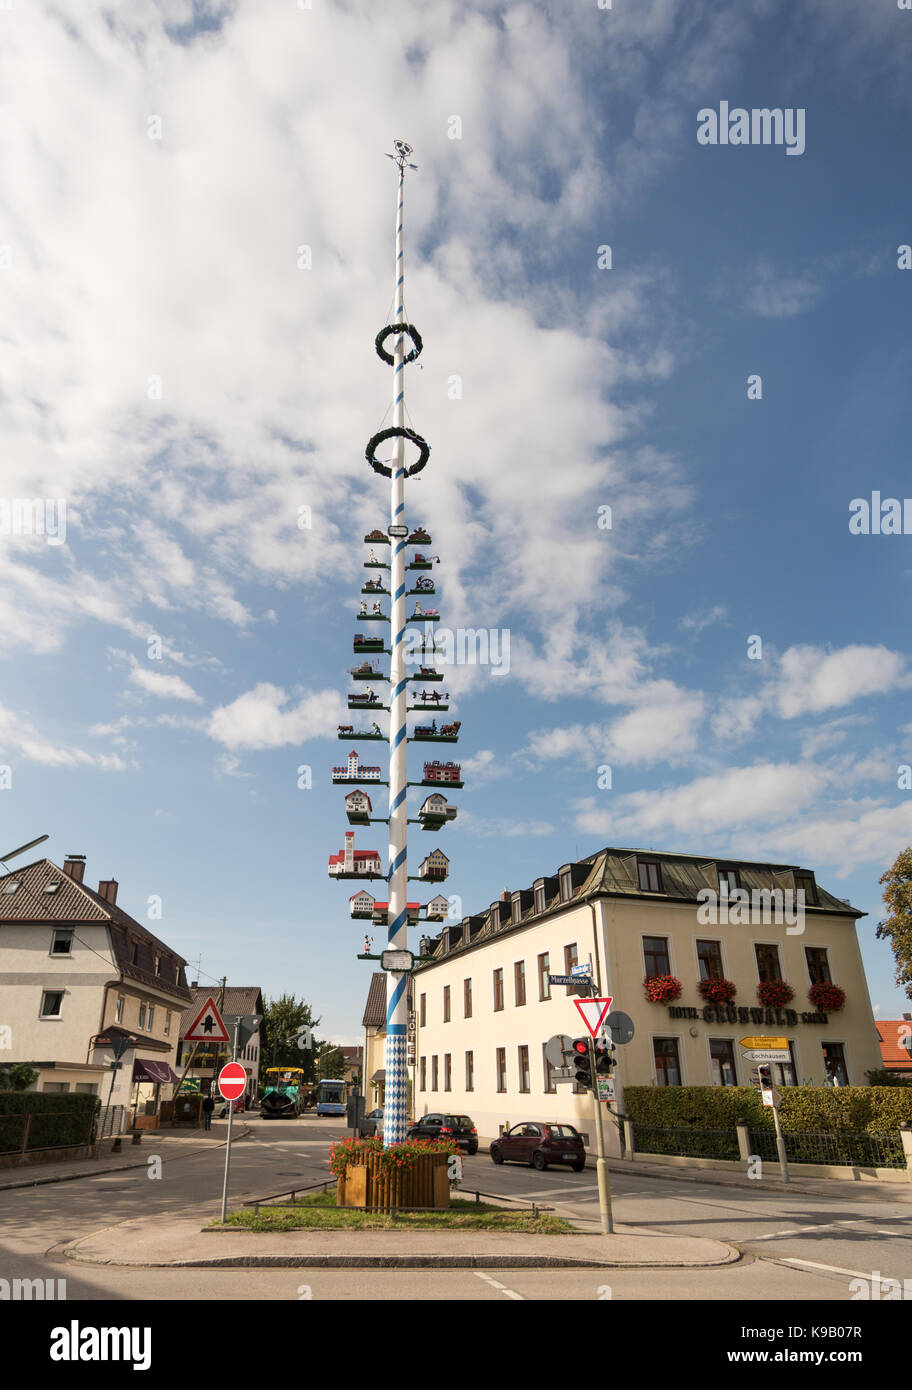 Traditional Maypole showing local craftsmens guilds, Aubing, near Munich, Germany, Europe. - Stock Image